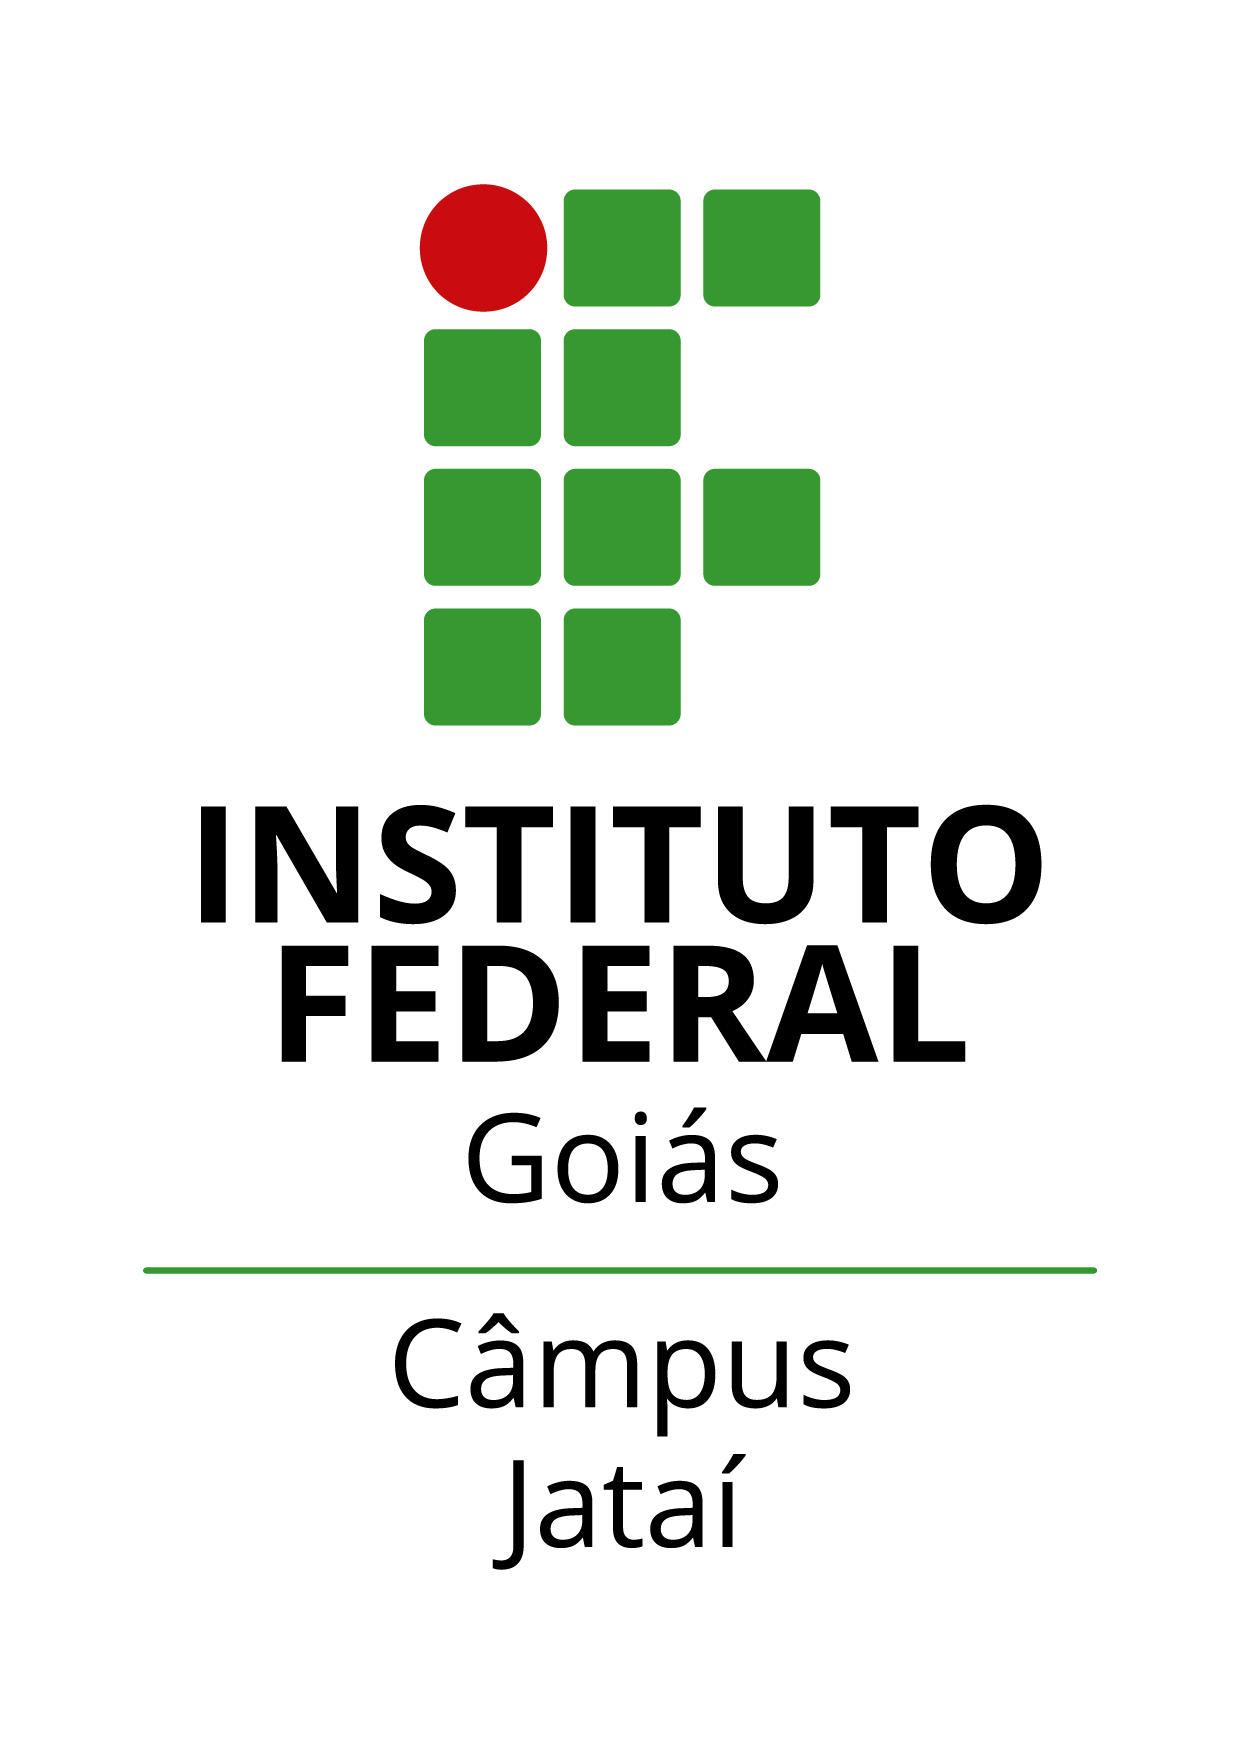 Logo do IFG - Câmpus Jataí